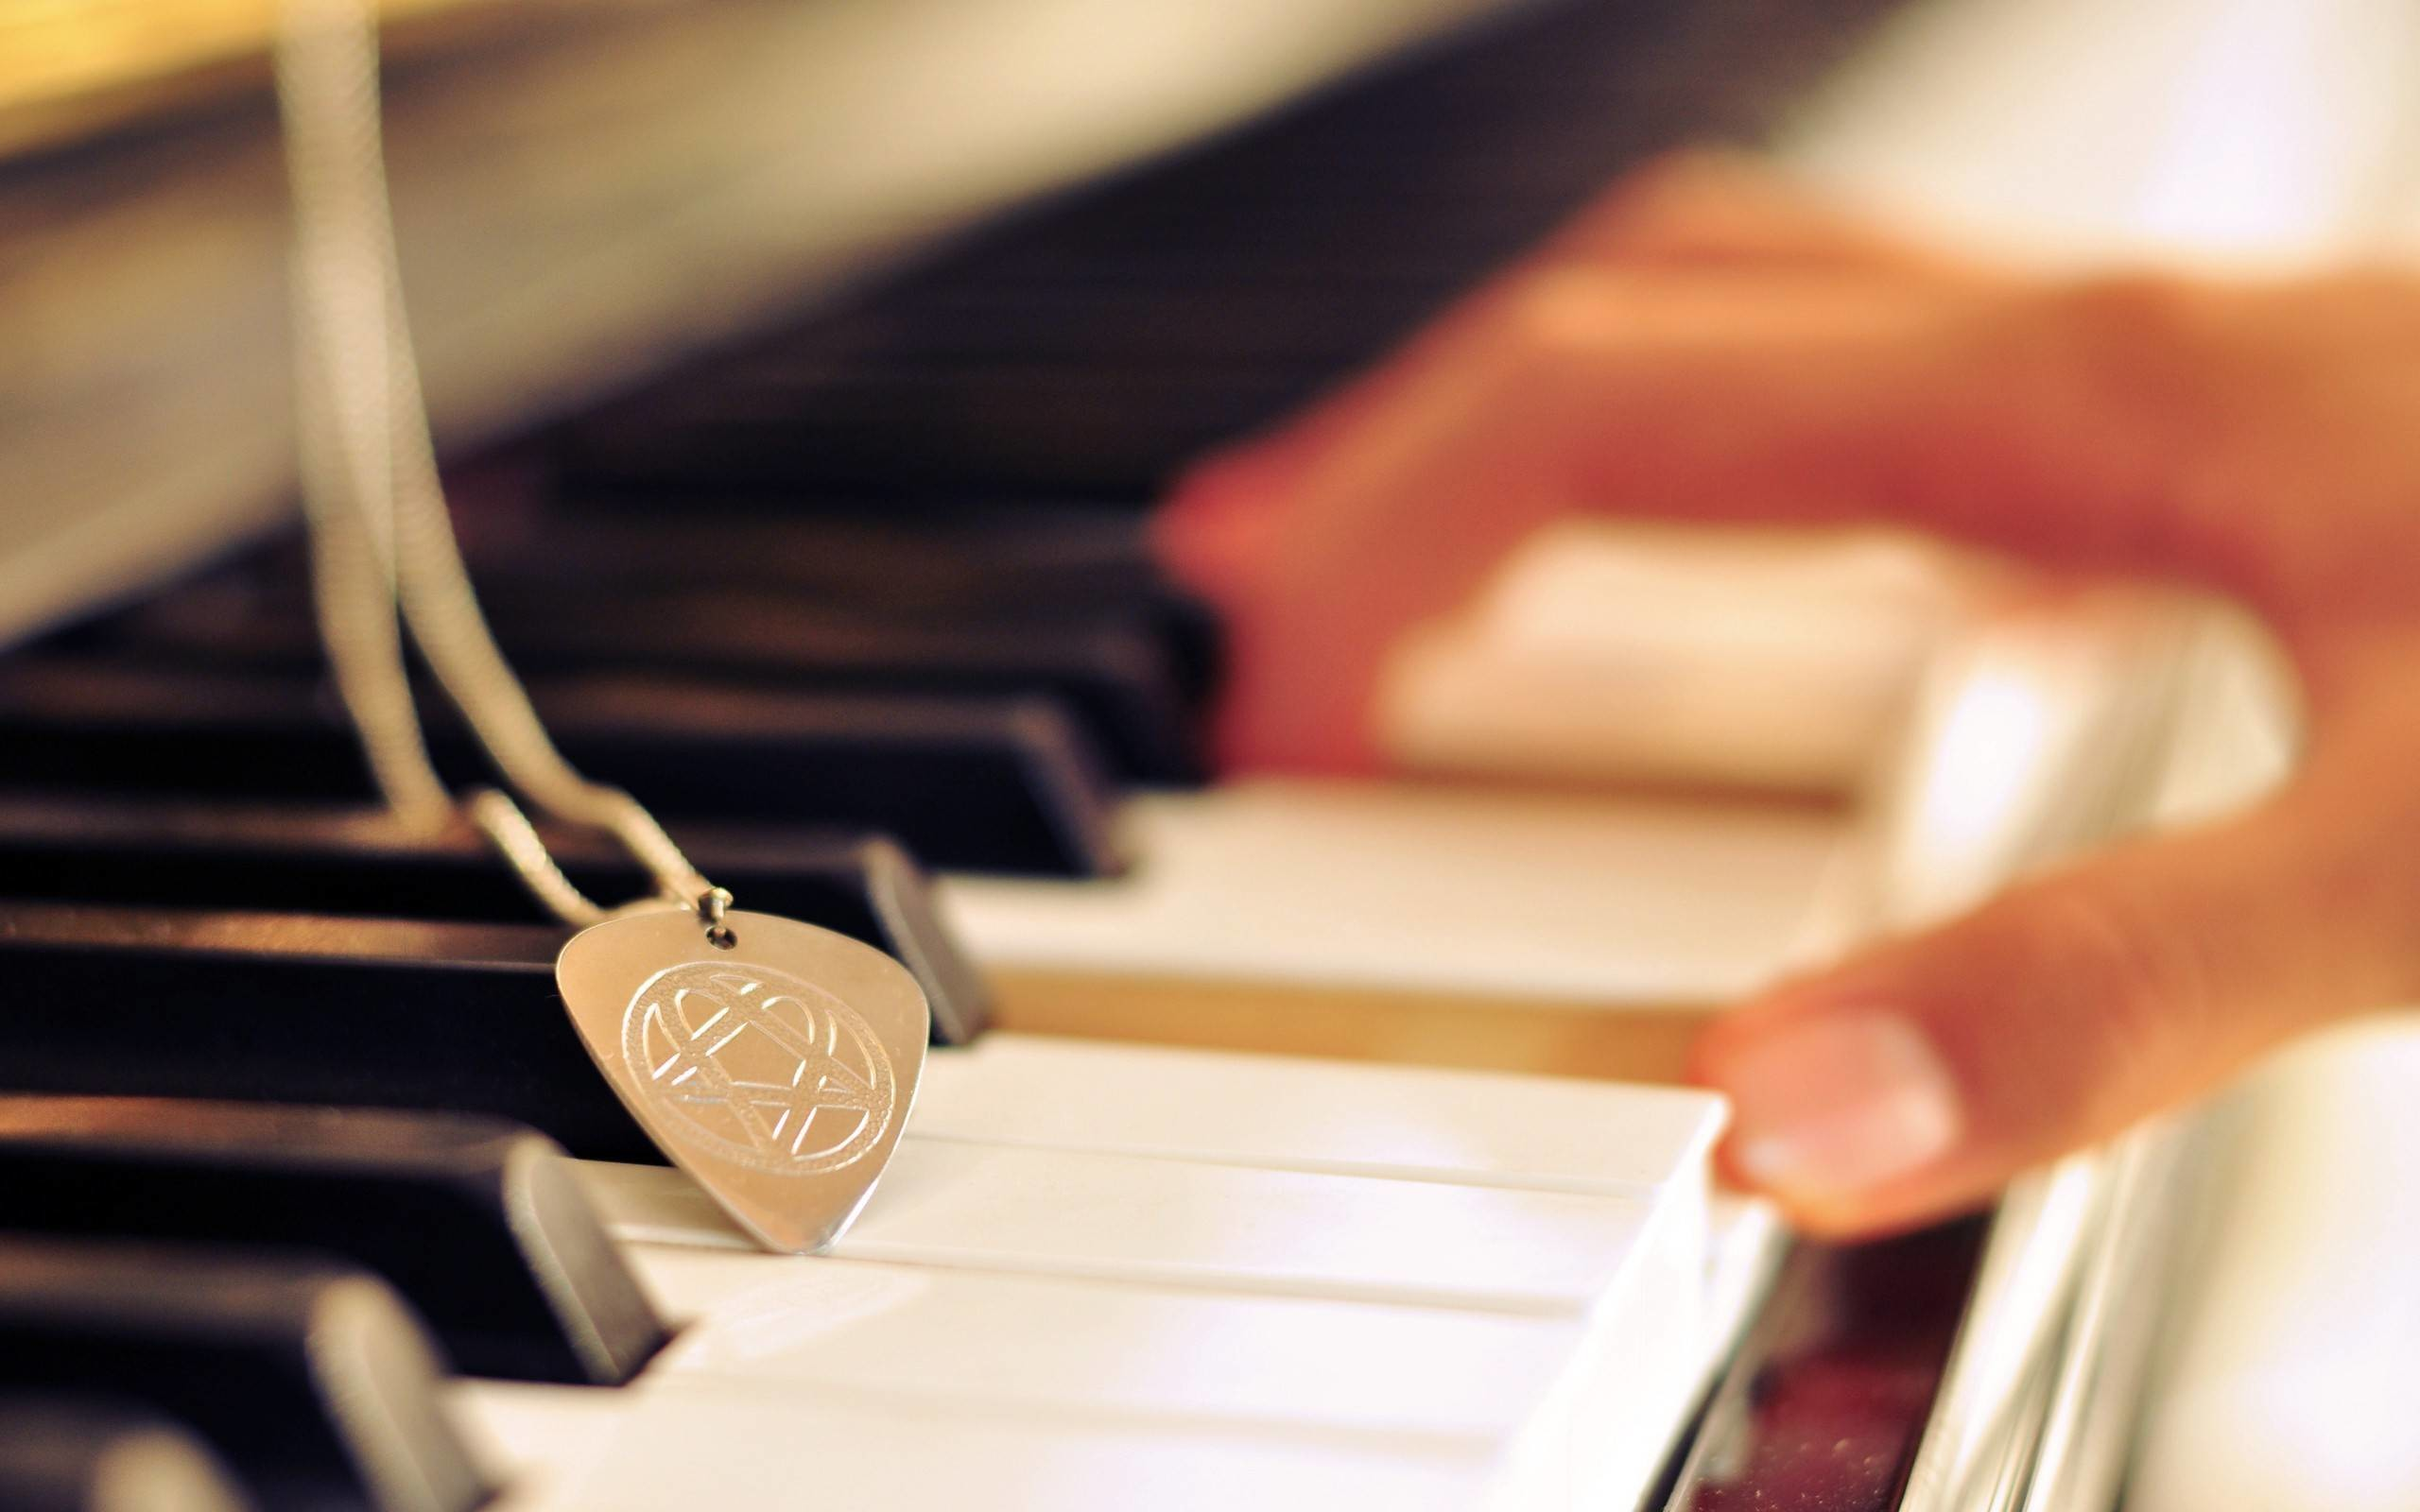 Piano Music Wallpaper 71 Pictures